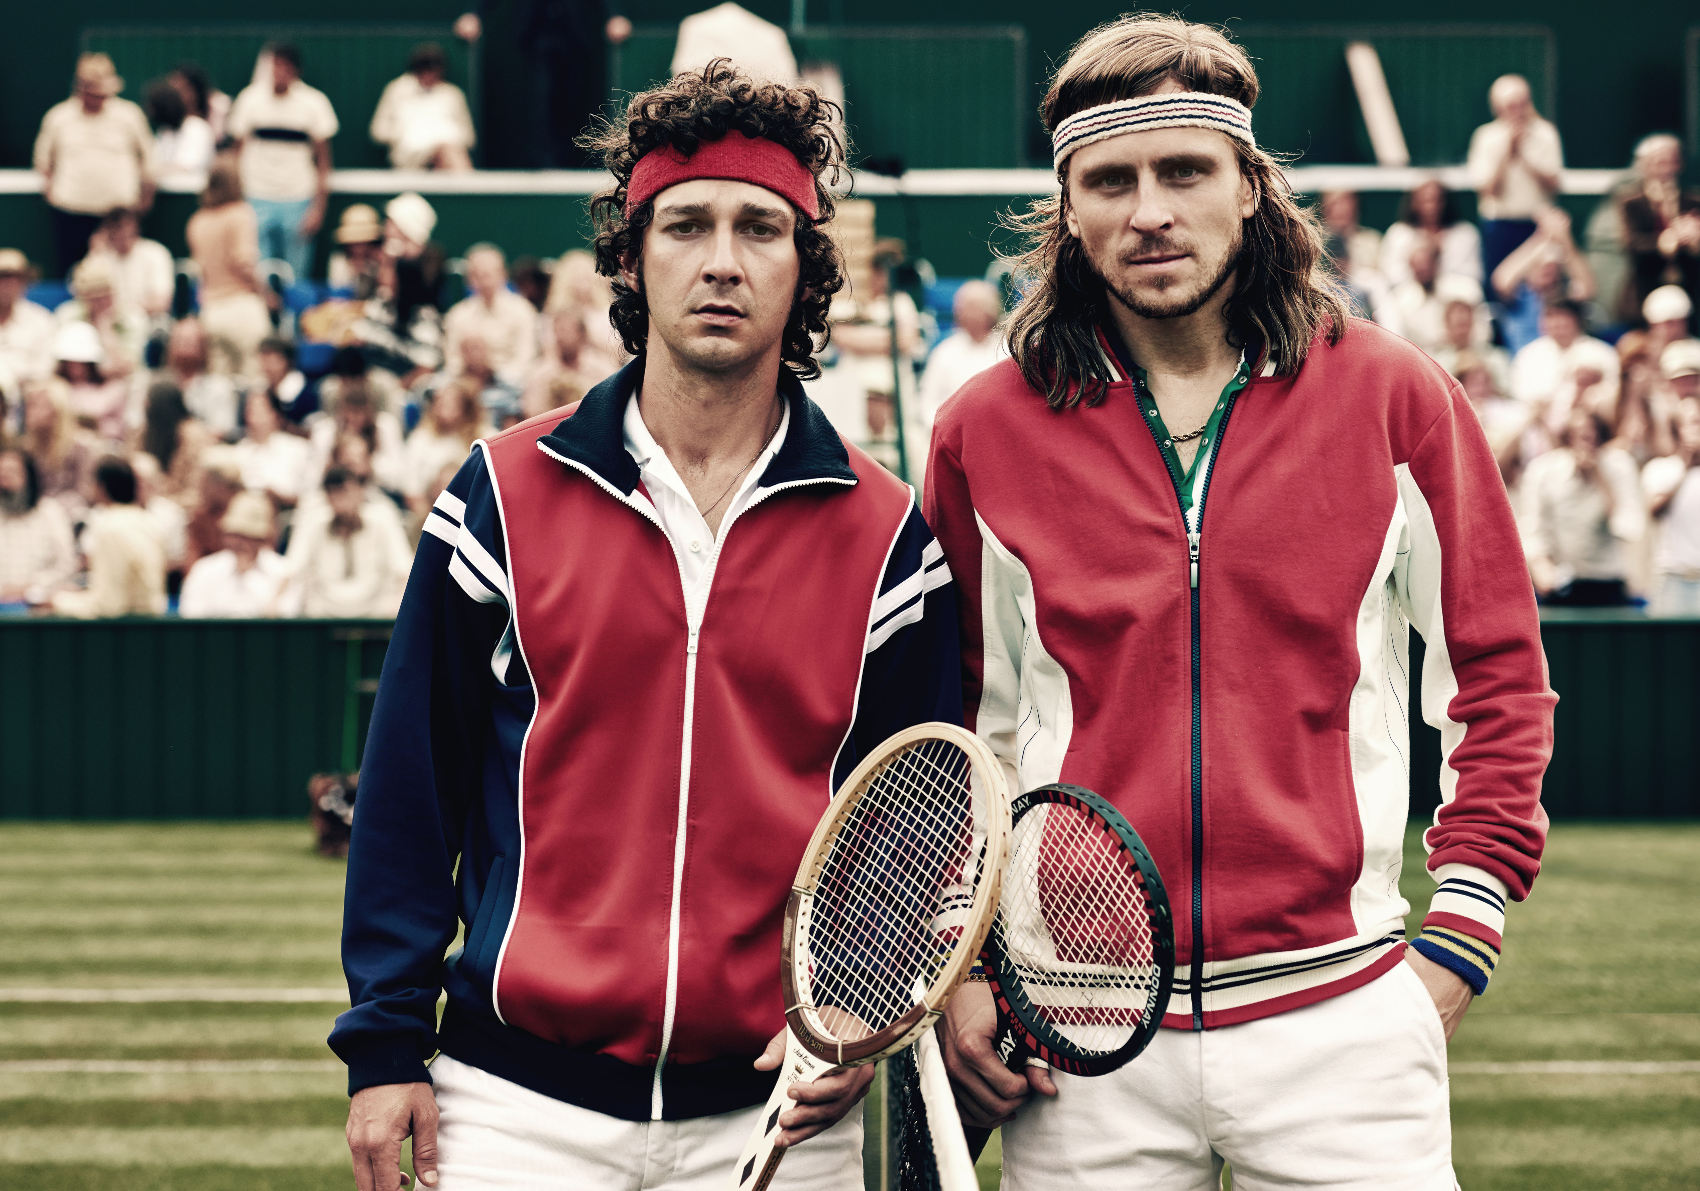 Borg/McEnroe Copyright: Julie Vrabelová Image courtesy of Nordisk Film